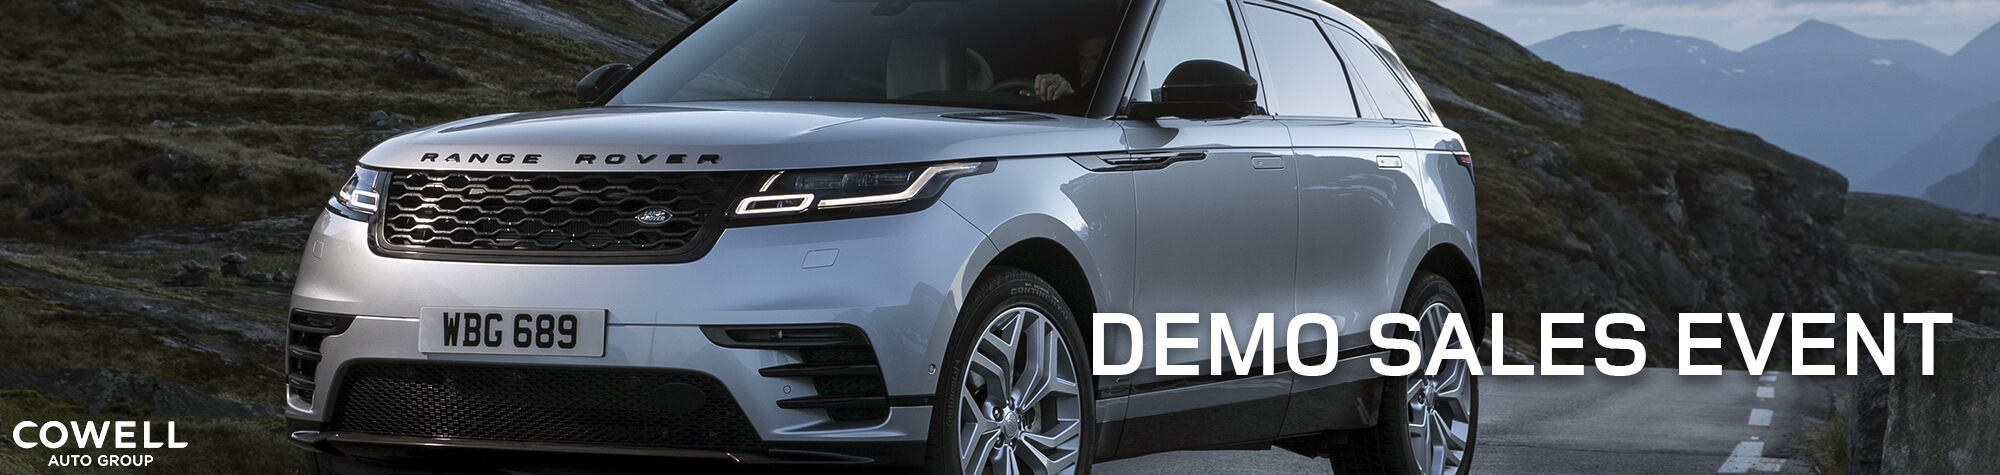 2019 June Demo Sales Event (Chinese)